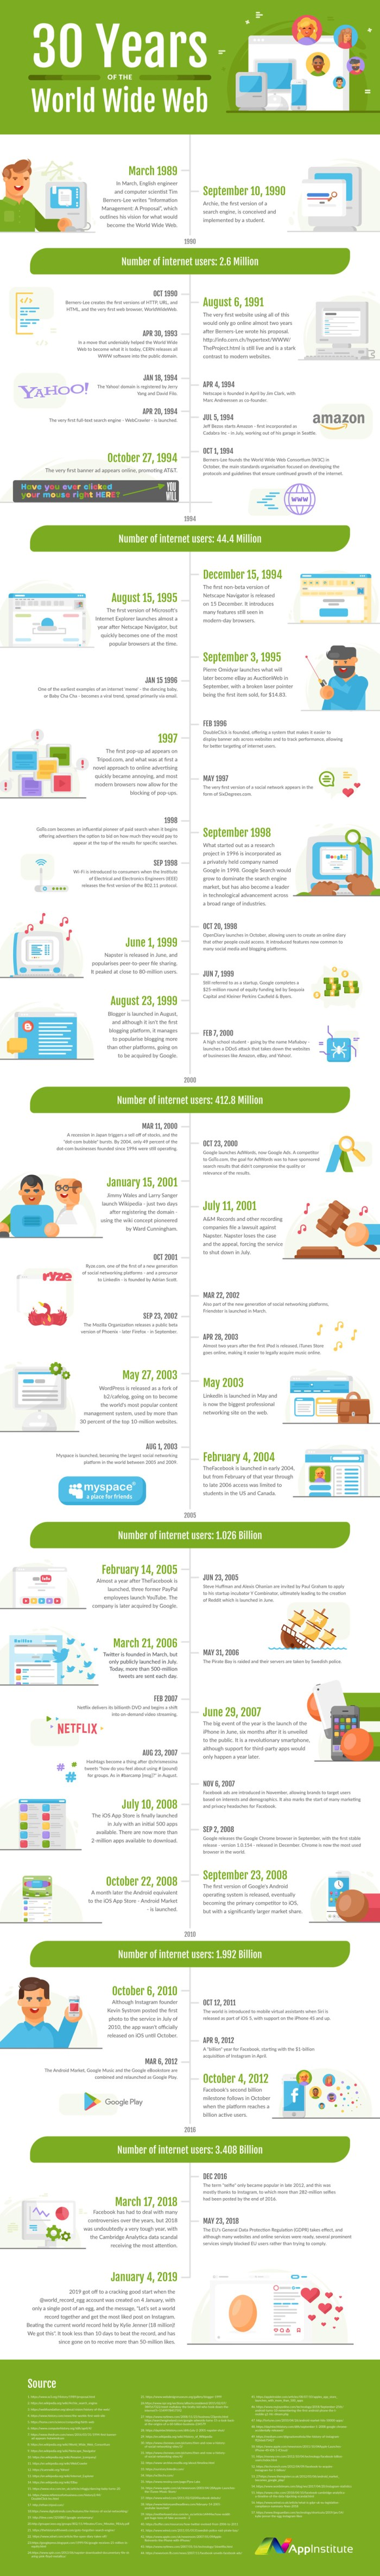 History of Web